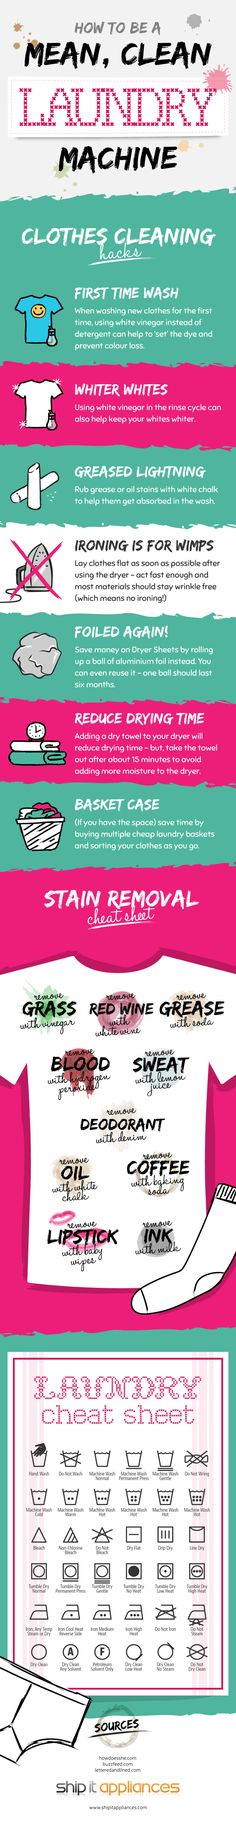 'How To Become A Mean, Clean Laundry Machine [Infographic]...!' (via Daily Infographic)